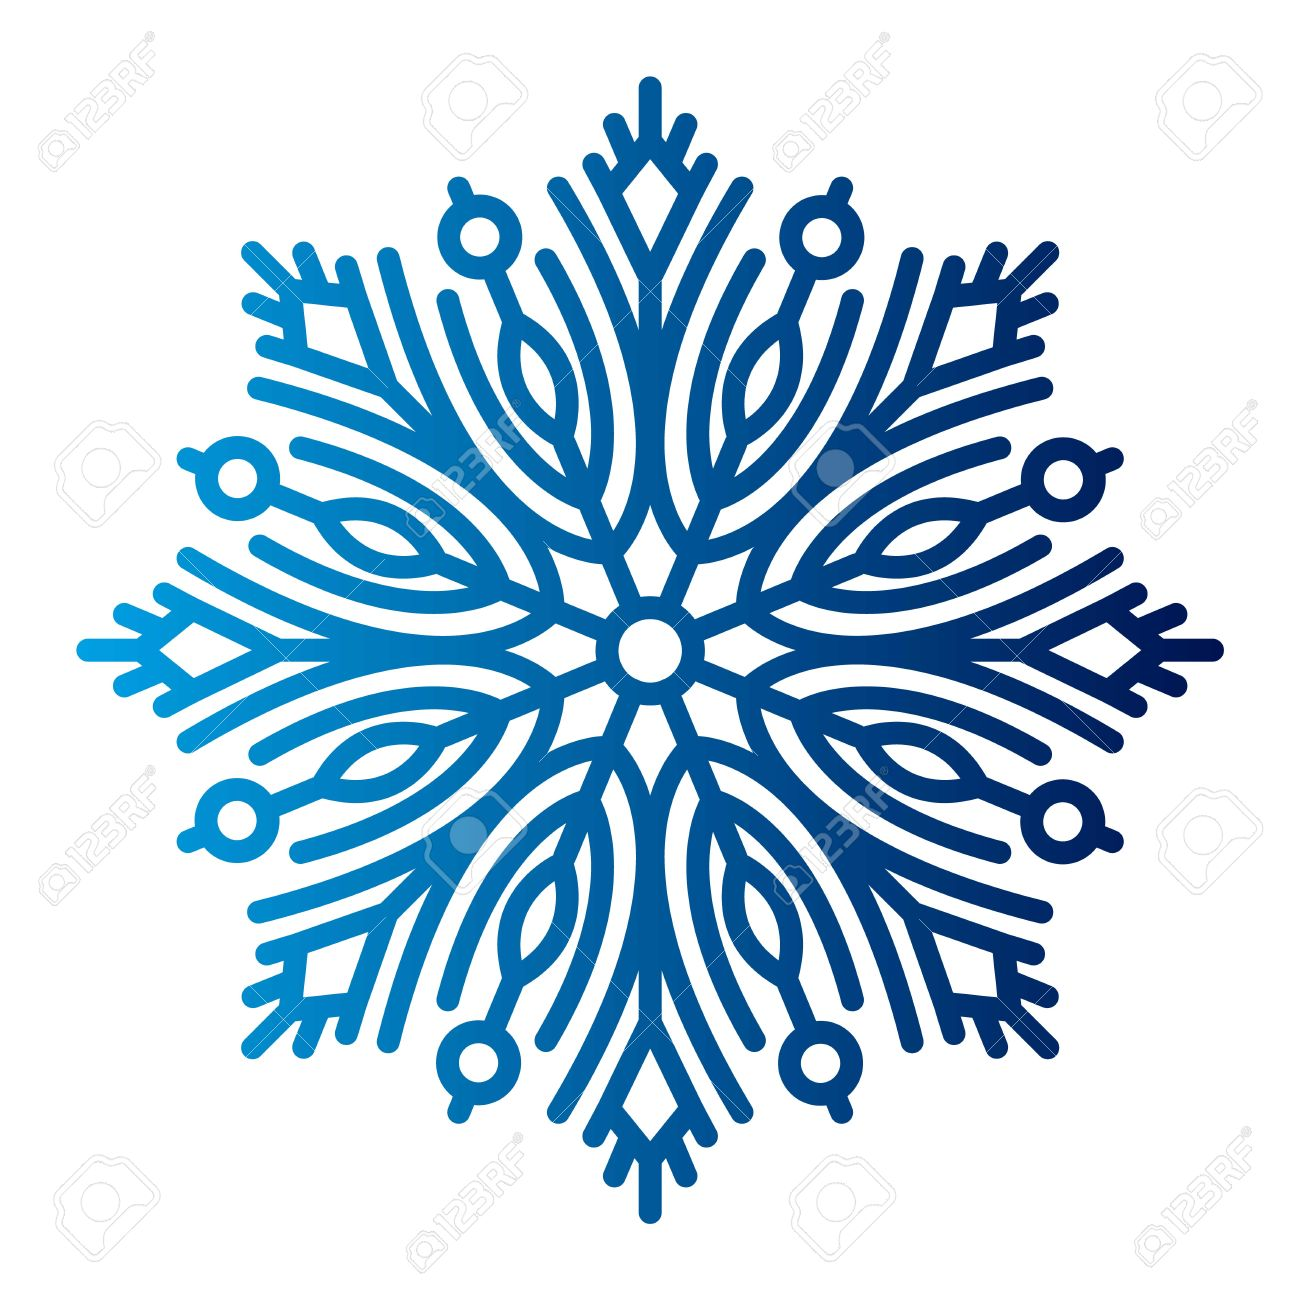 Snowflake Vector Illustration And Season Nature Winter Sign Symbol.